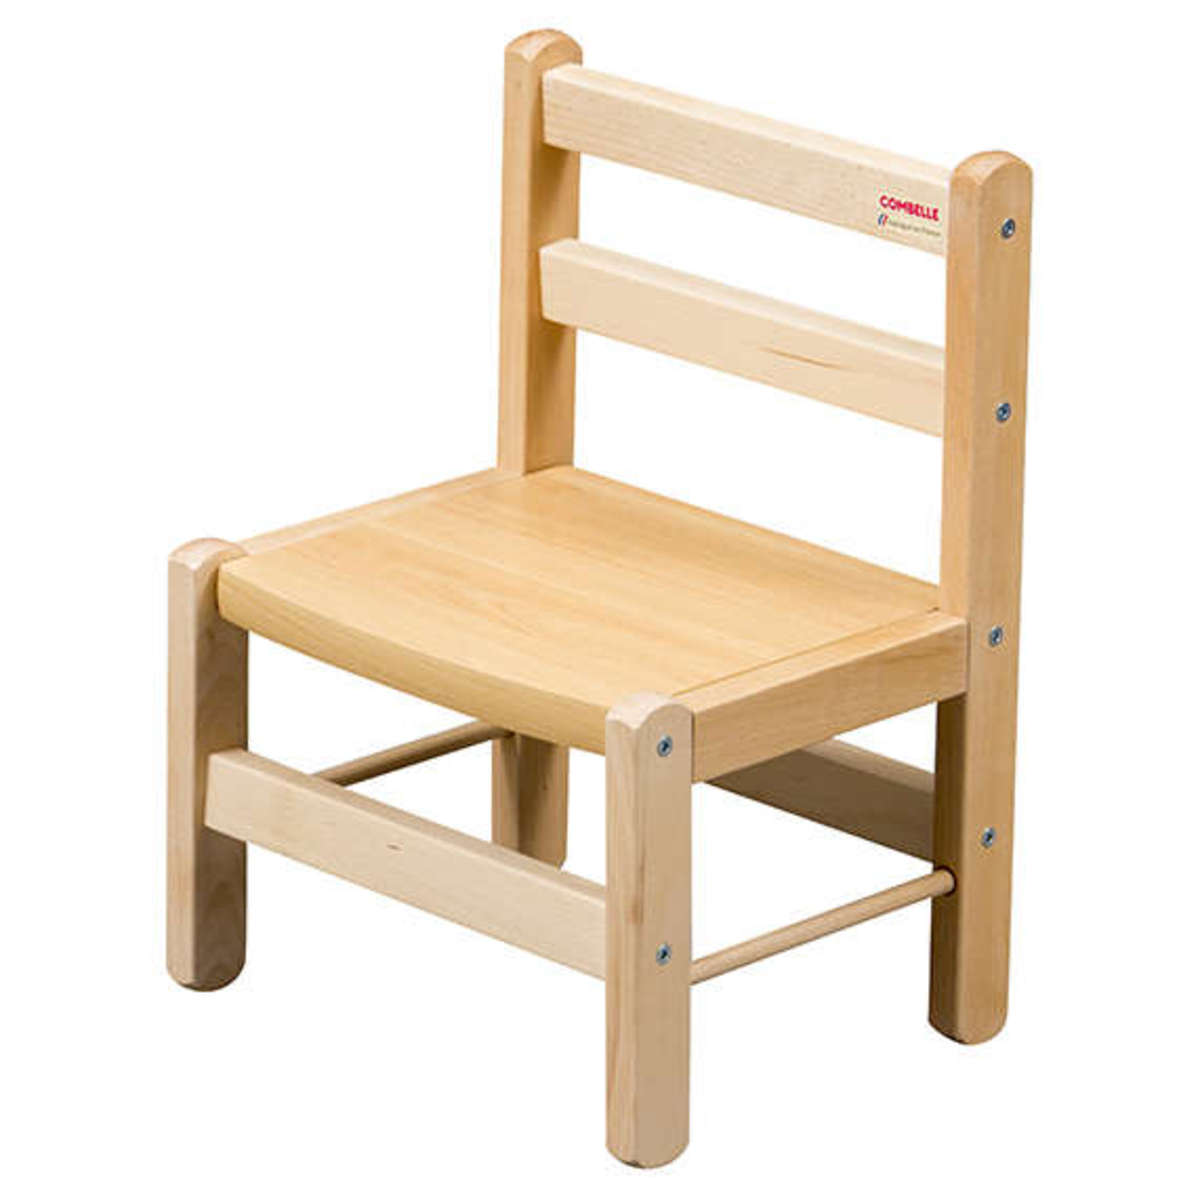 Petites Chaises Enfants Combelle Chaise Enfant Naturel Table And Chaise Combelle